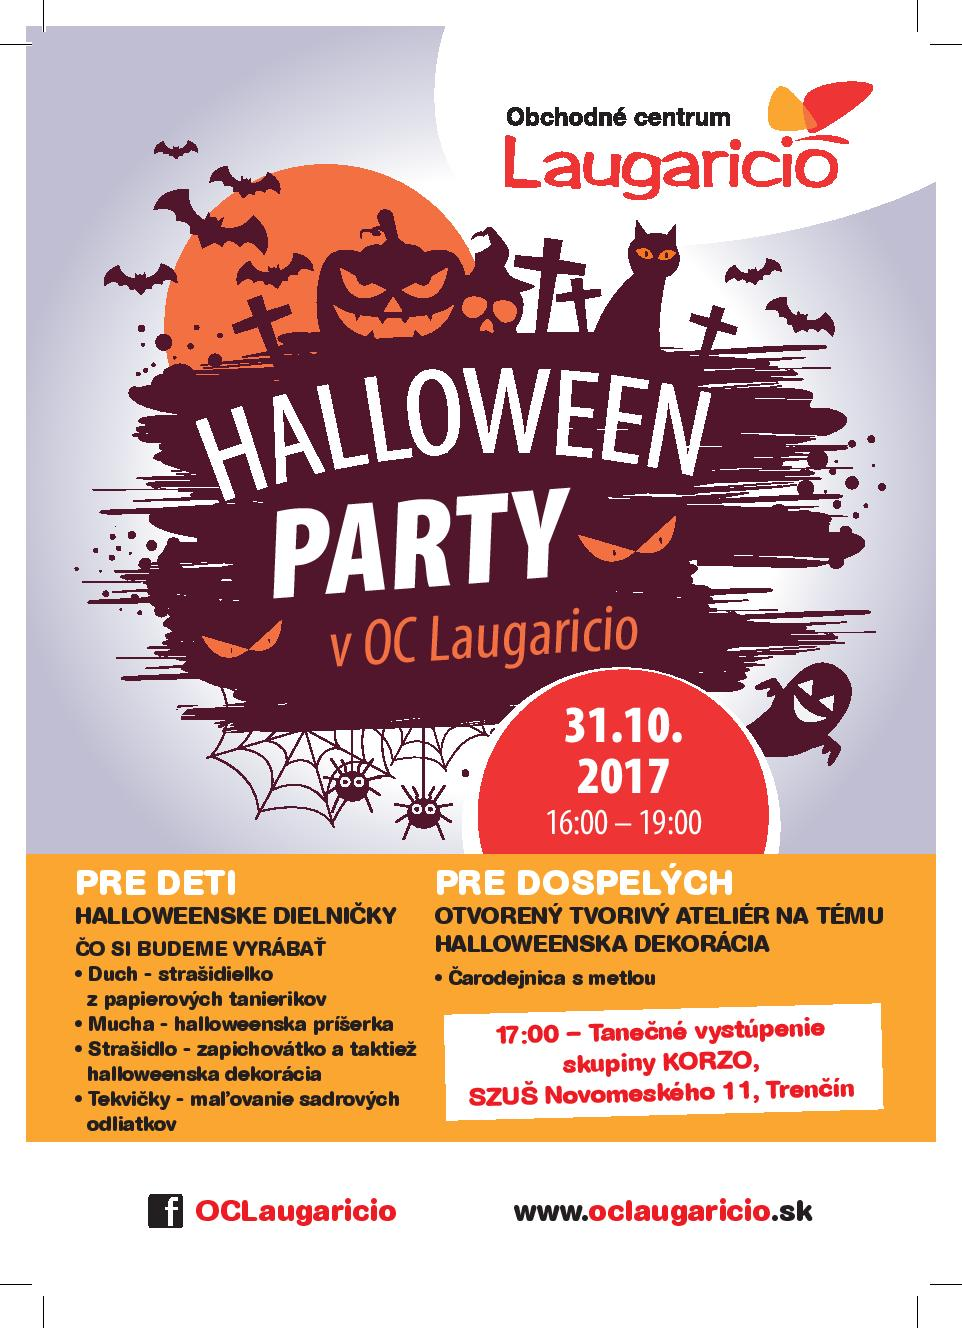 HALLOWEEN PARTY V OC LAUGARICIO